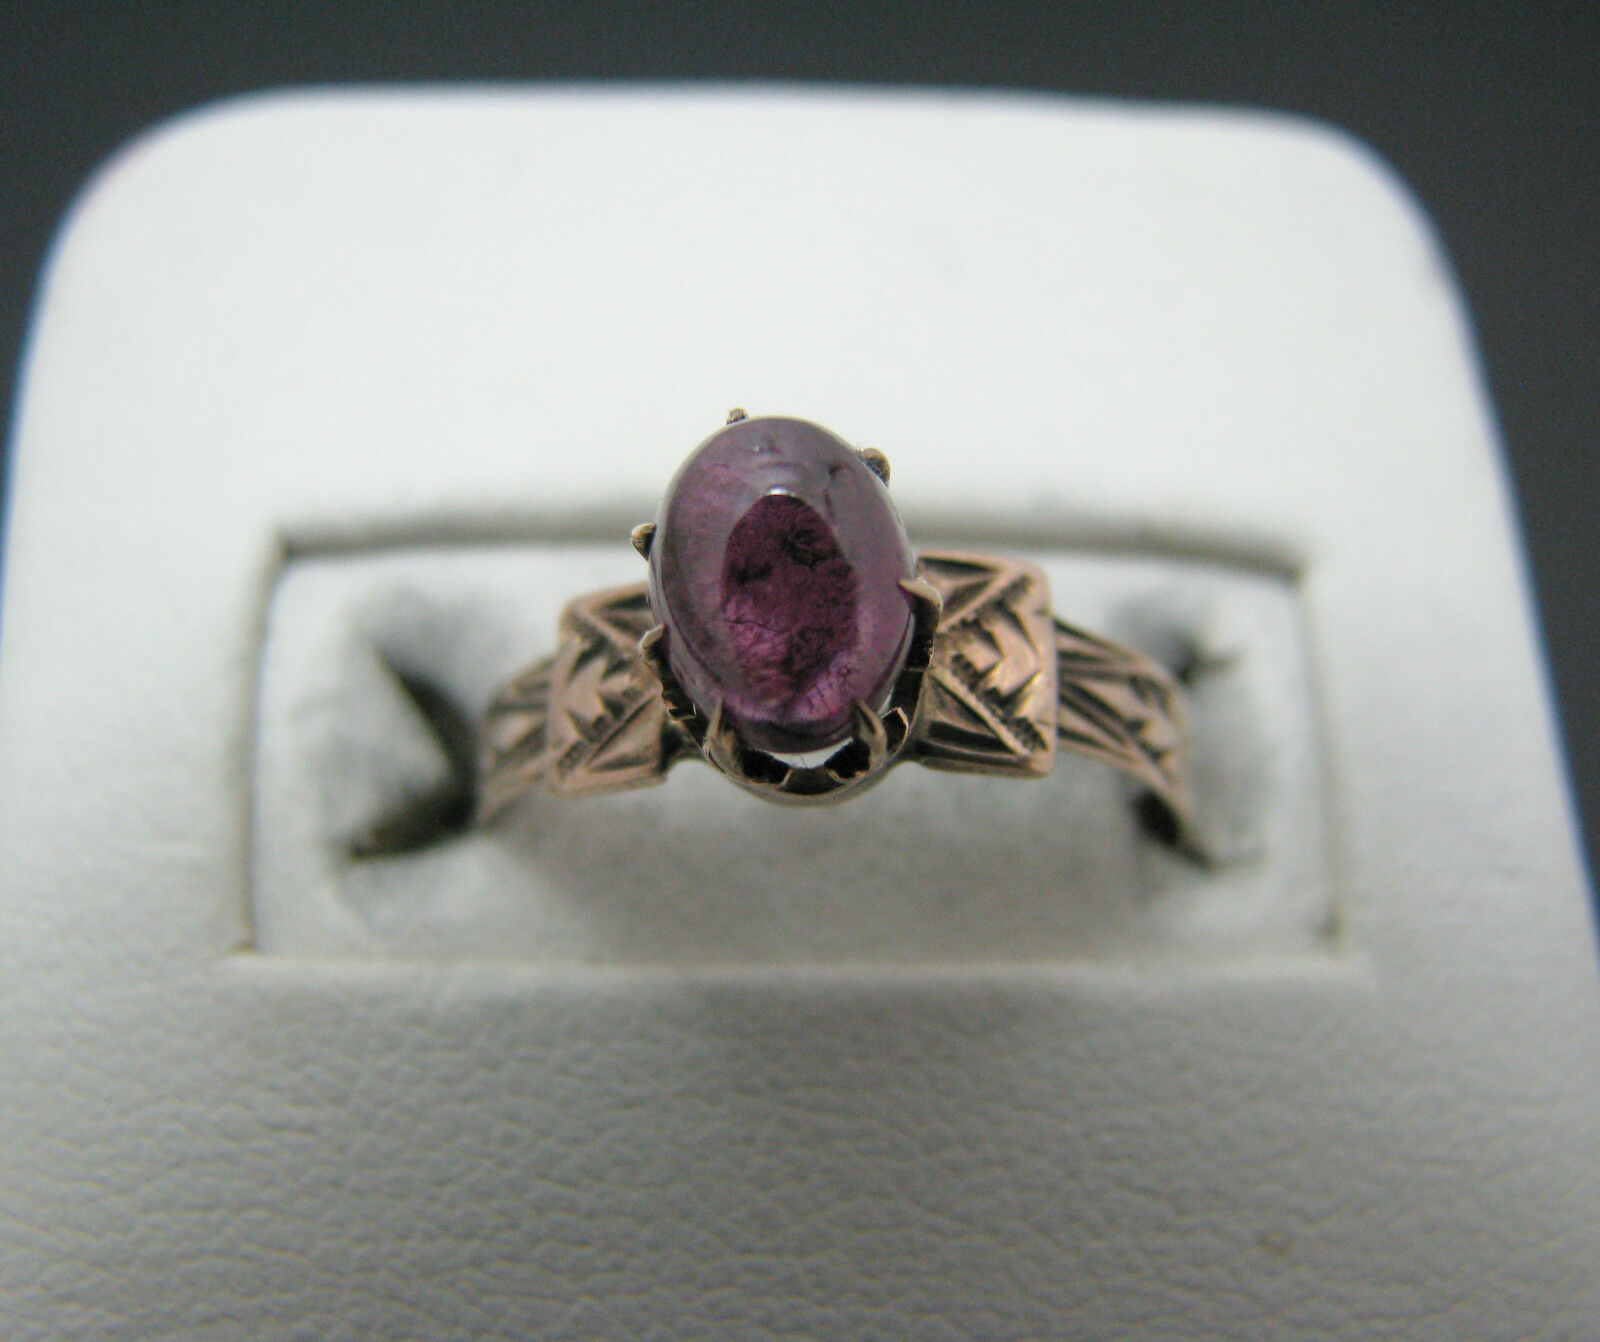 C405 Very Nice Vintage 10k Yellow gold Ring set with a Purple Stone